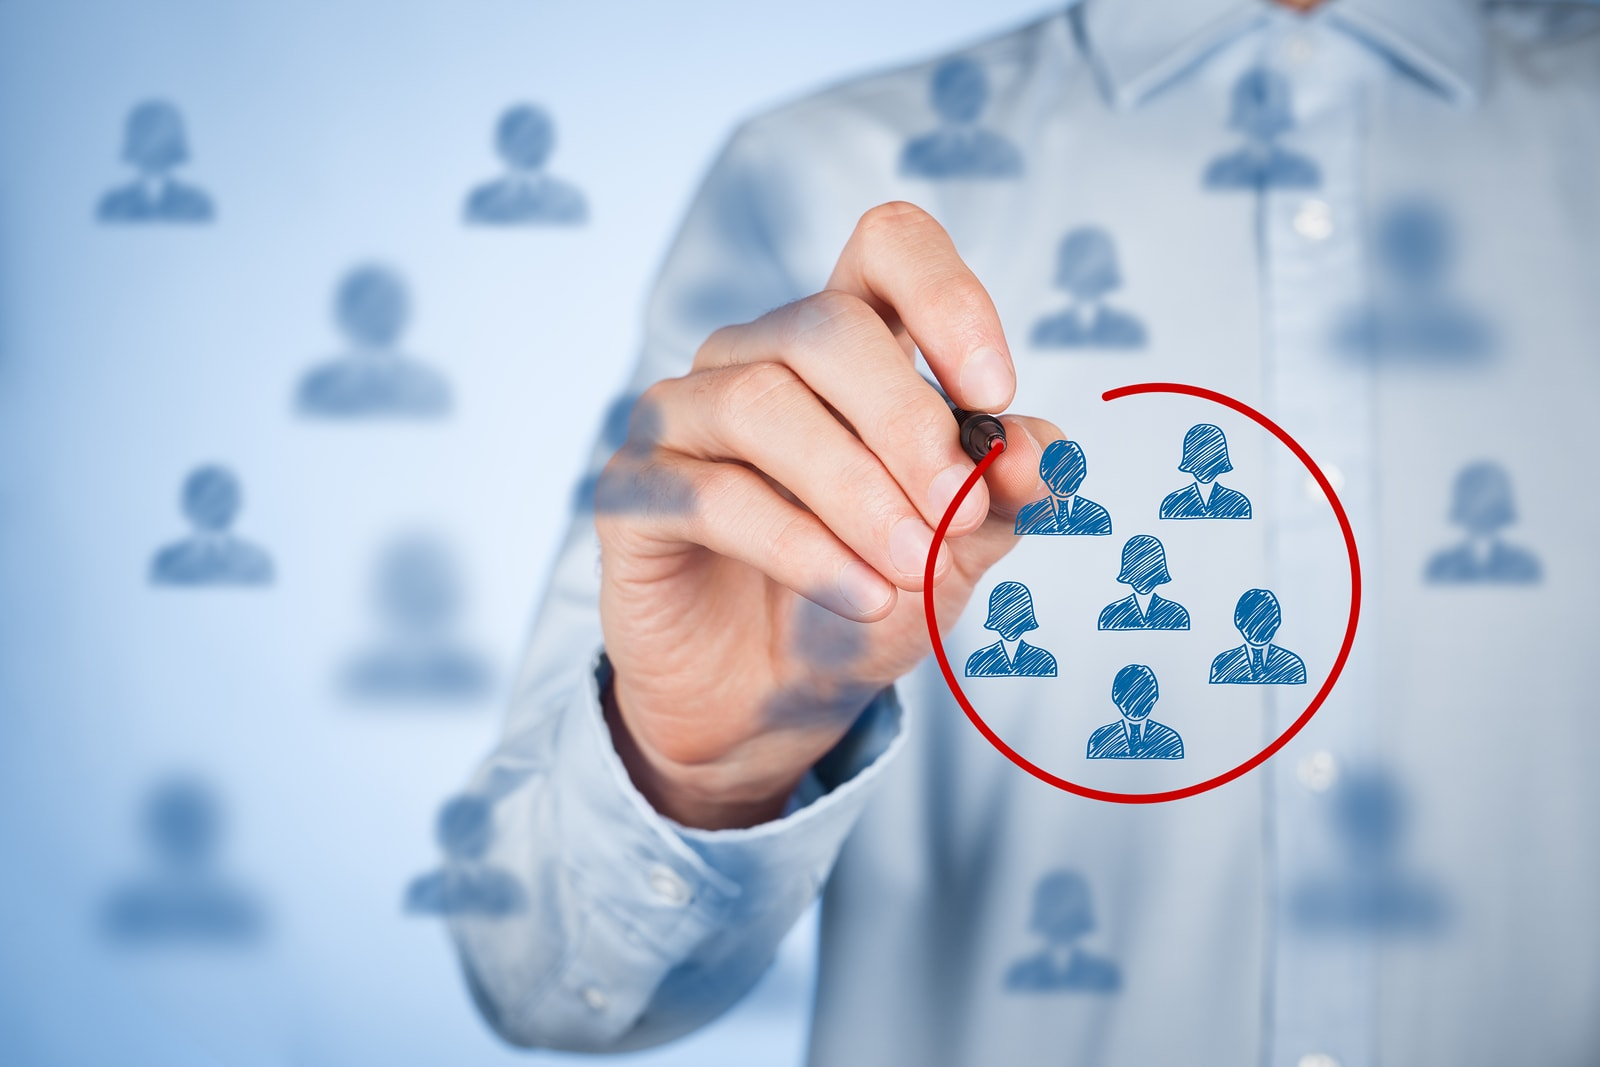 Use-Recruitment-Services-to-Find-Staff.jpg